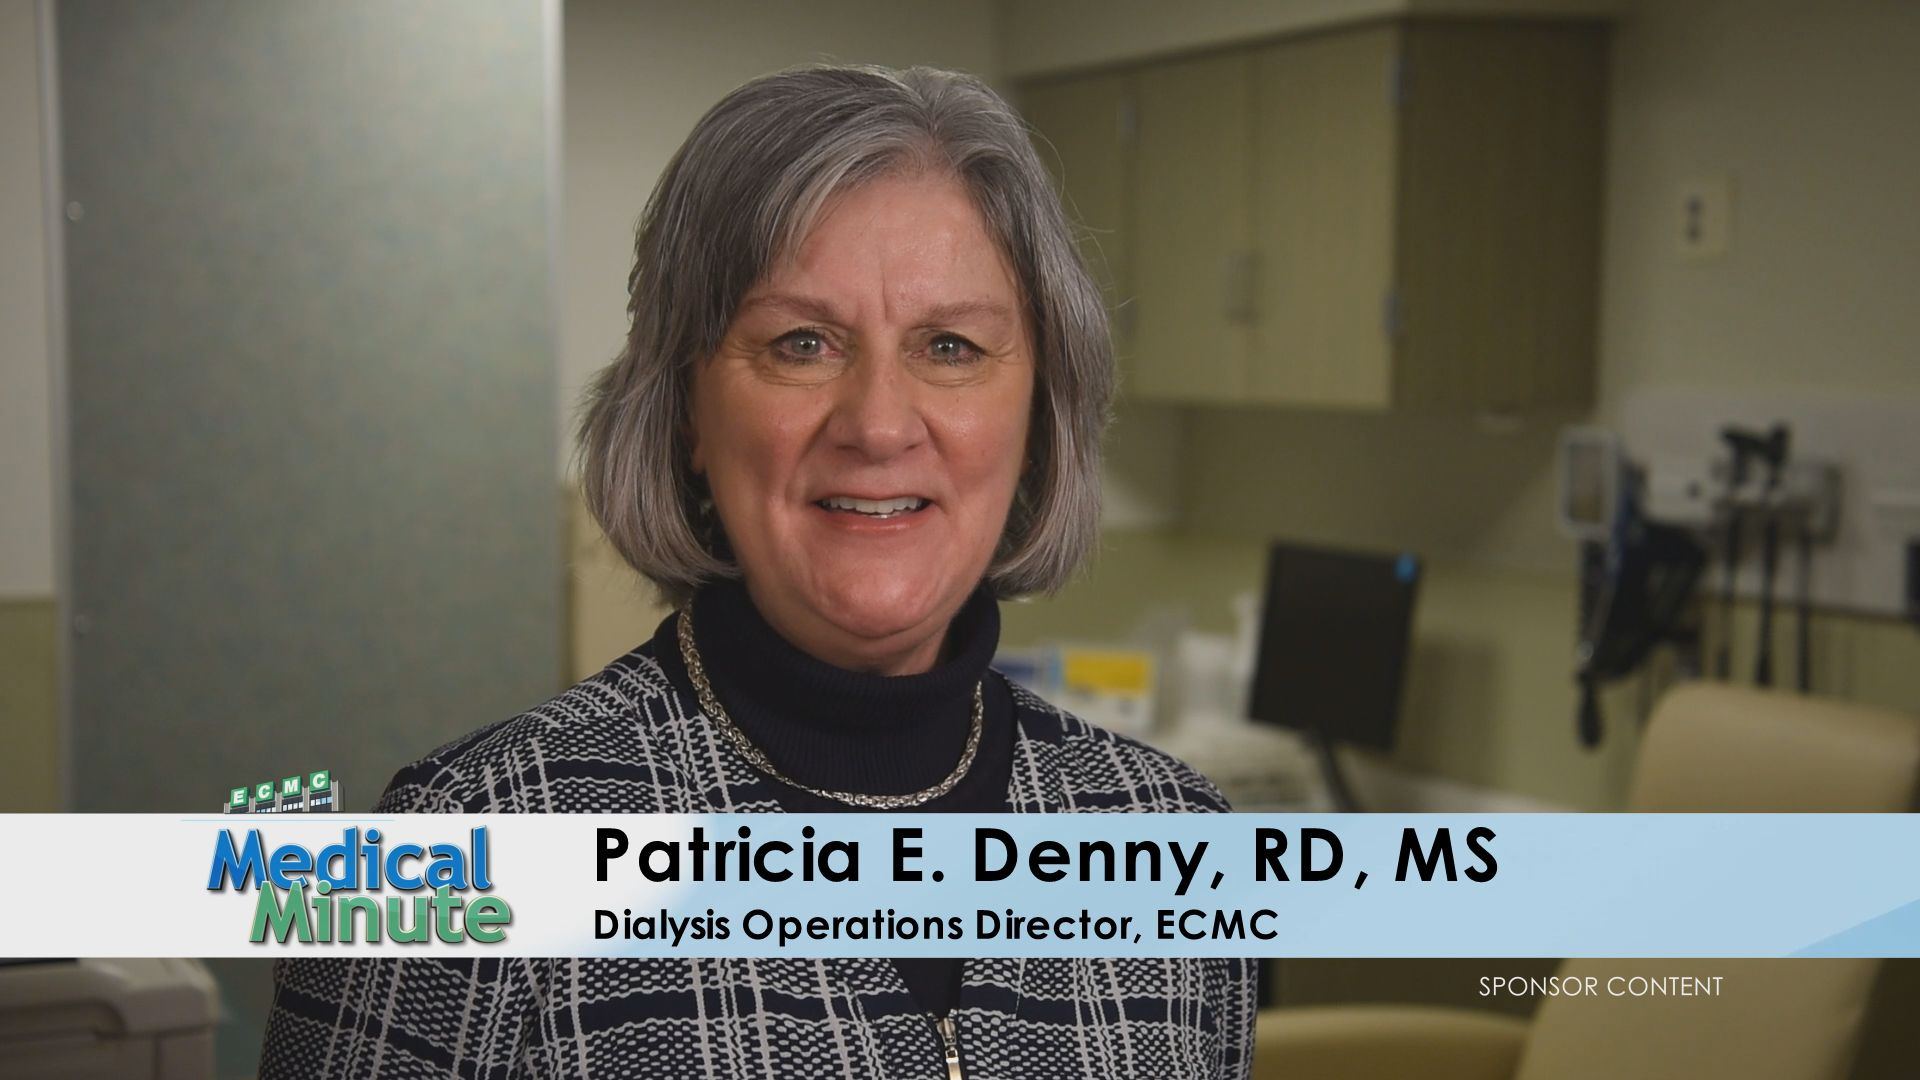 ECMCMedicalMinute PatriciaDenny,RD,MS KidneyDiseasePatientEducationSessions 021119 (1)